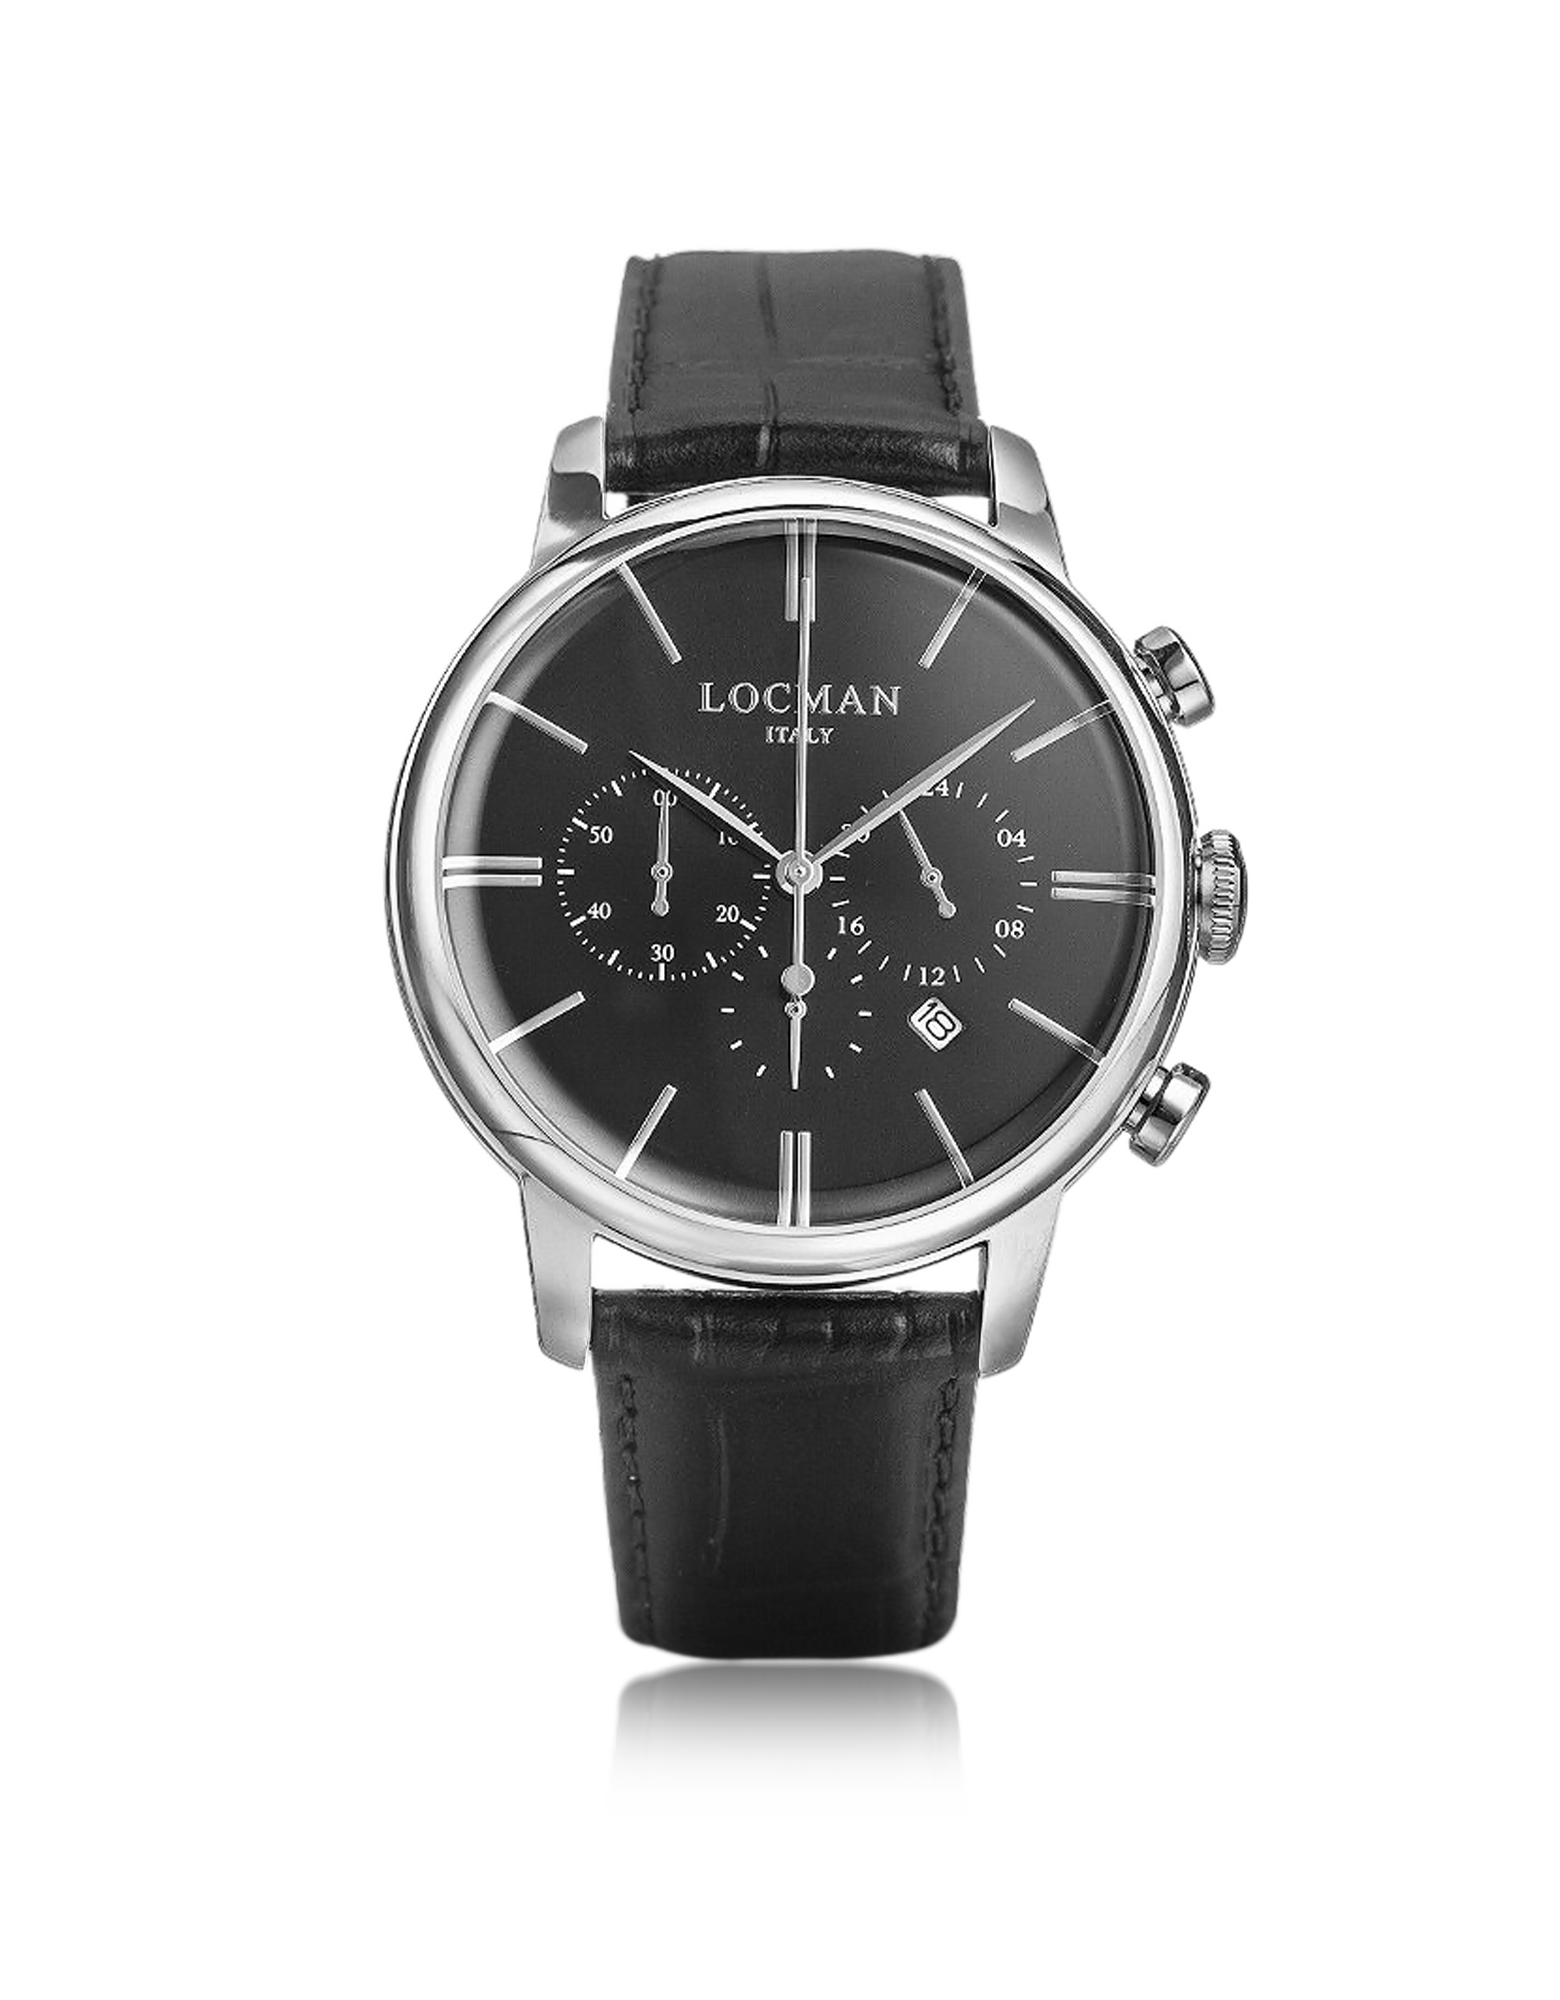 Image of 1960 Silver Stainless Steel Men's Chronograph Watch w/Black Croco Embossed Leather Strap